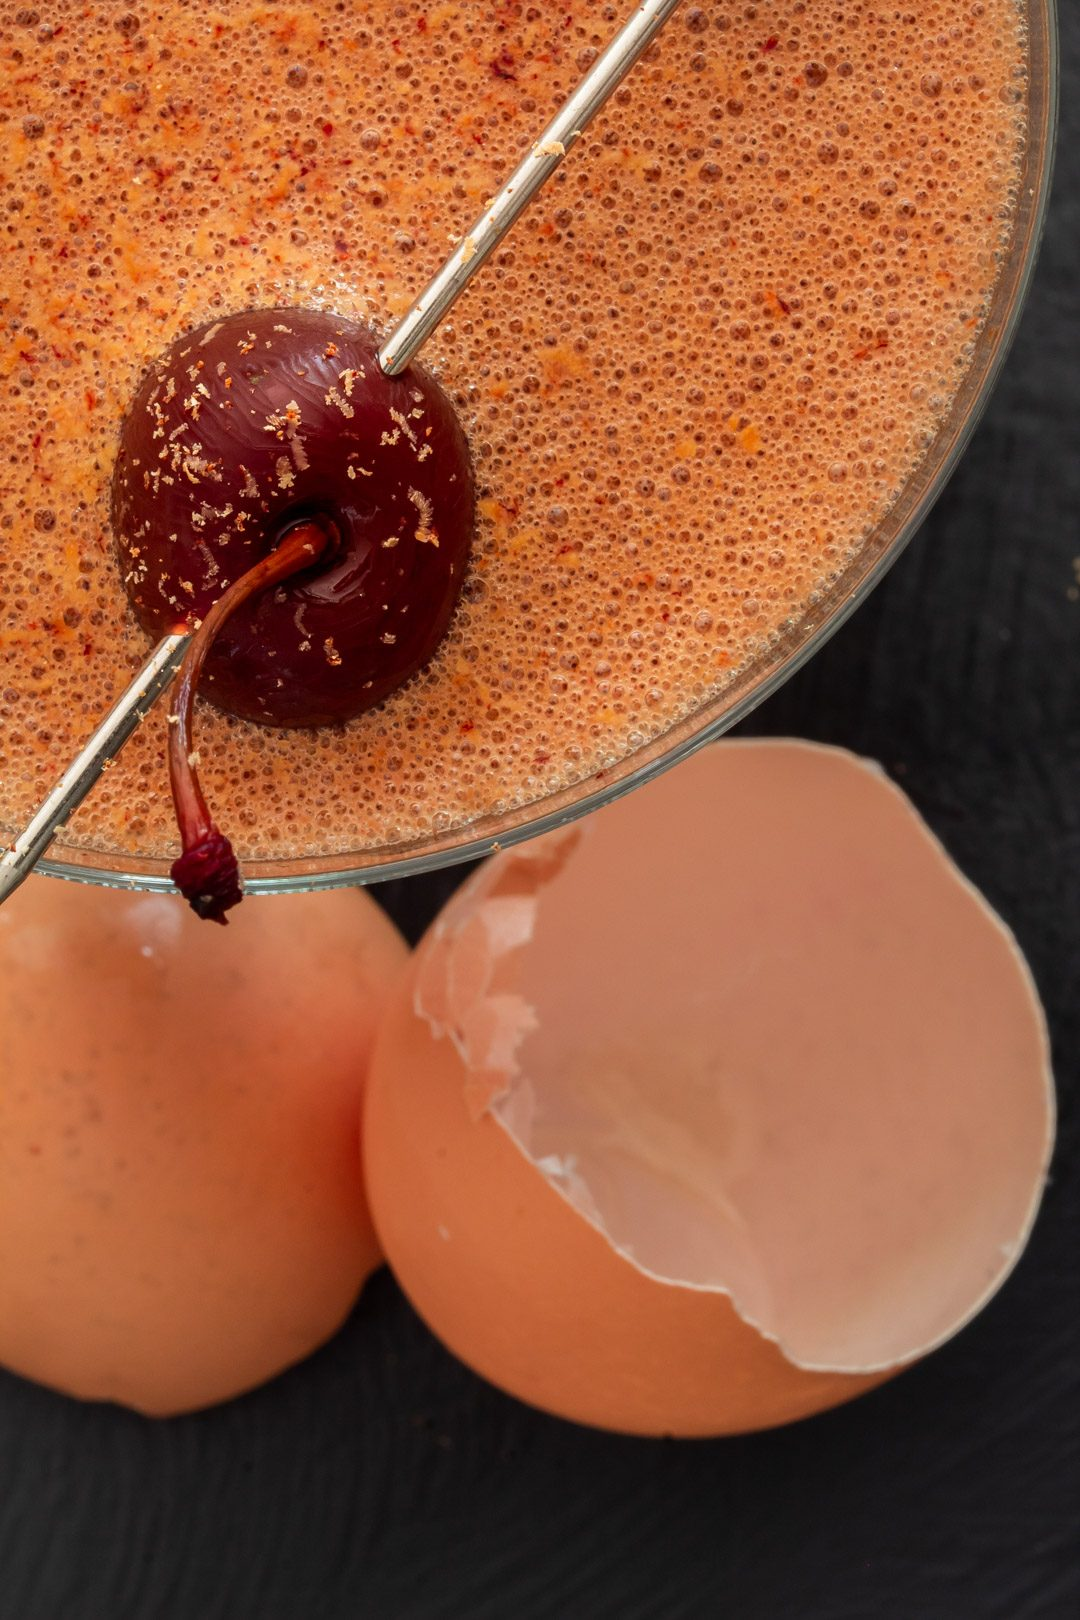 pickled cherry chocolate sherry flip cocktail from above with egg shell